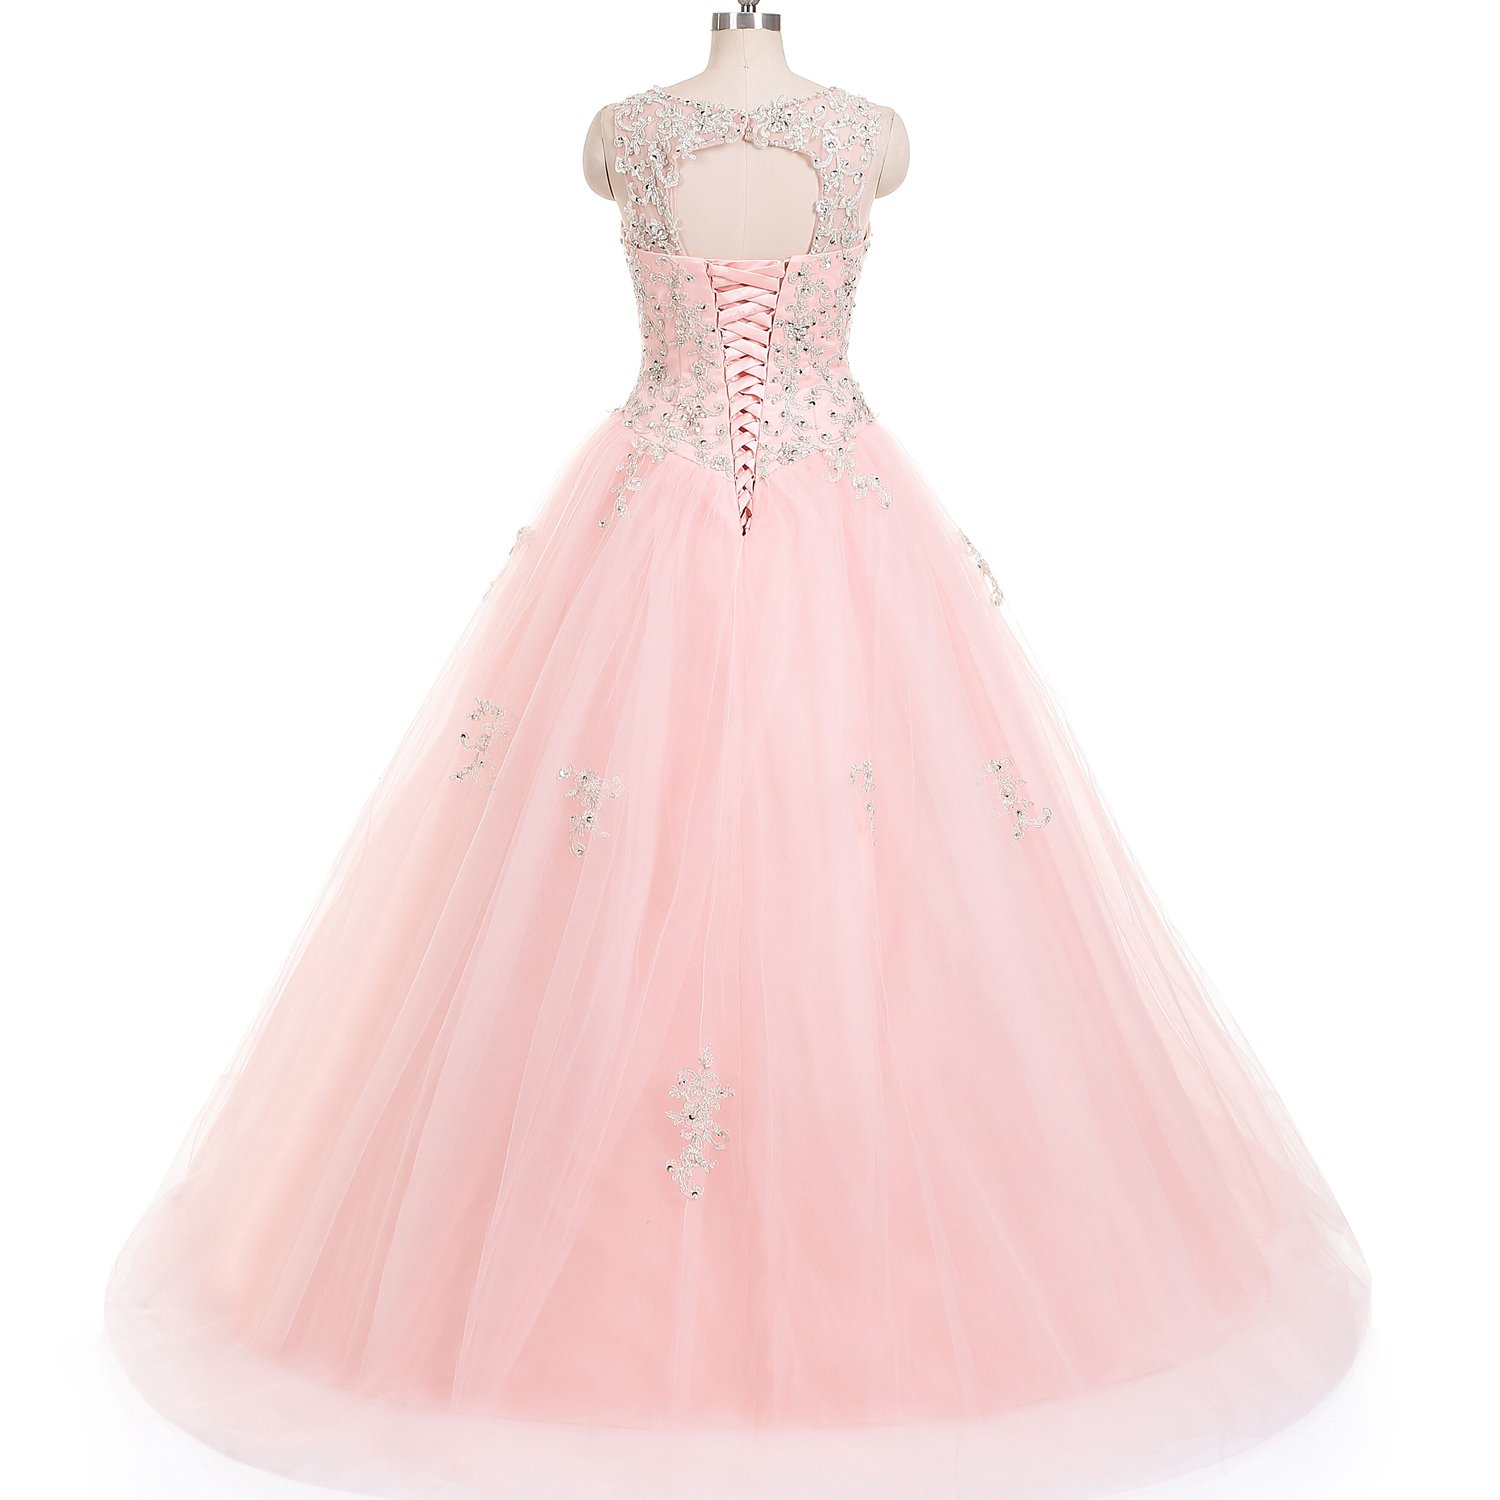 Princess Ball Gown Prom Dresses